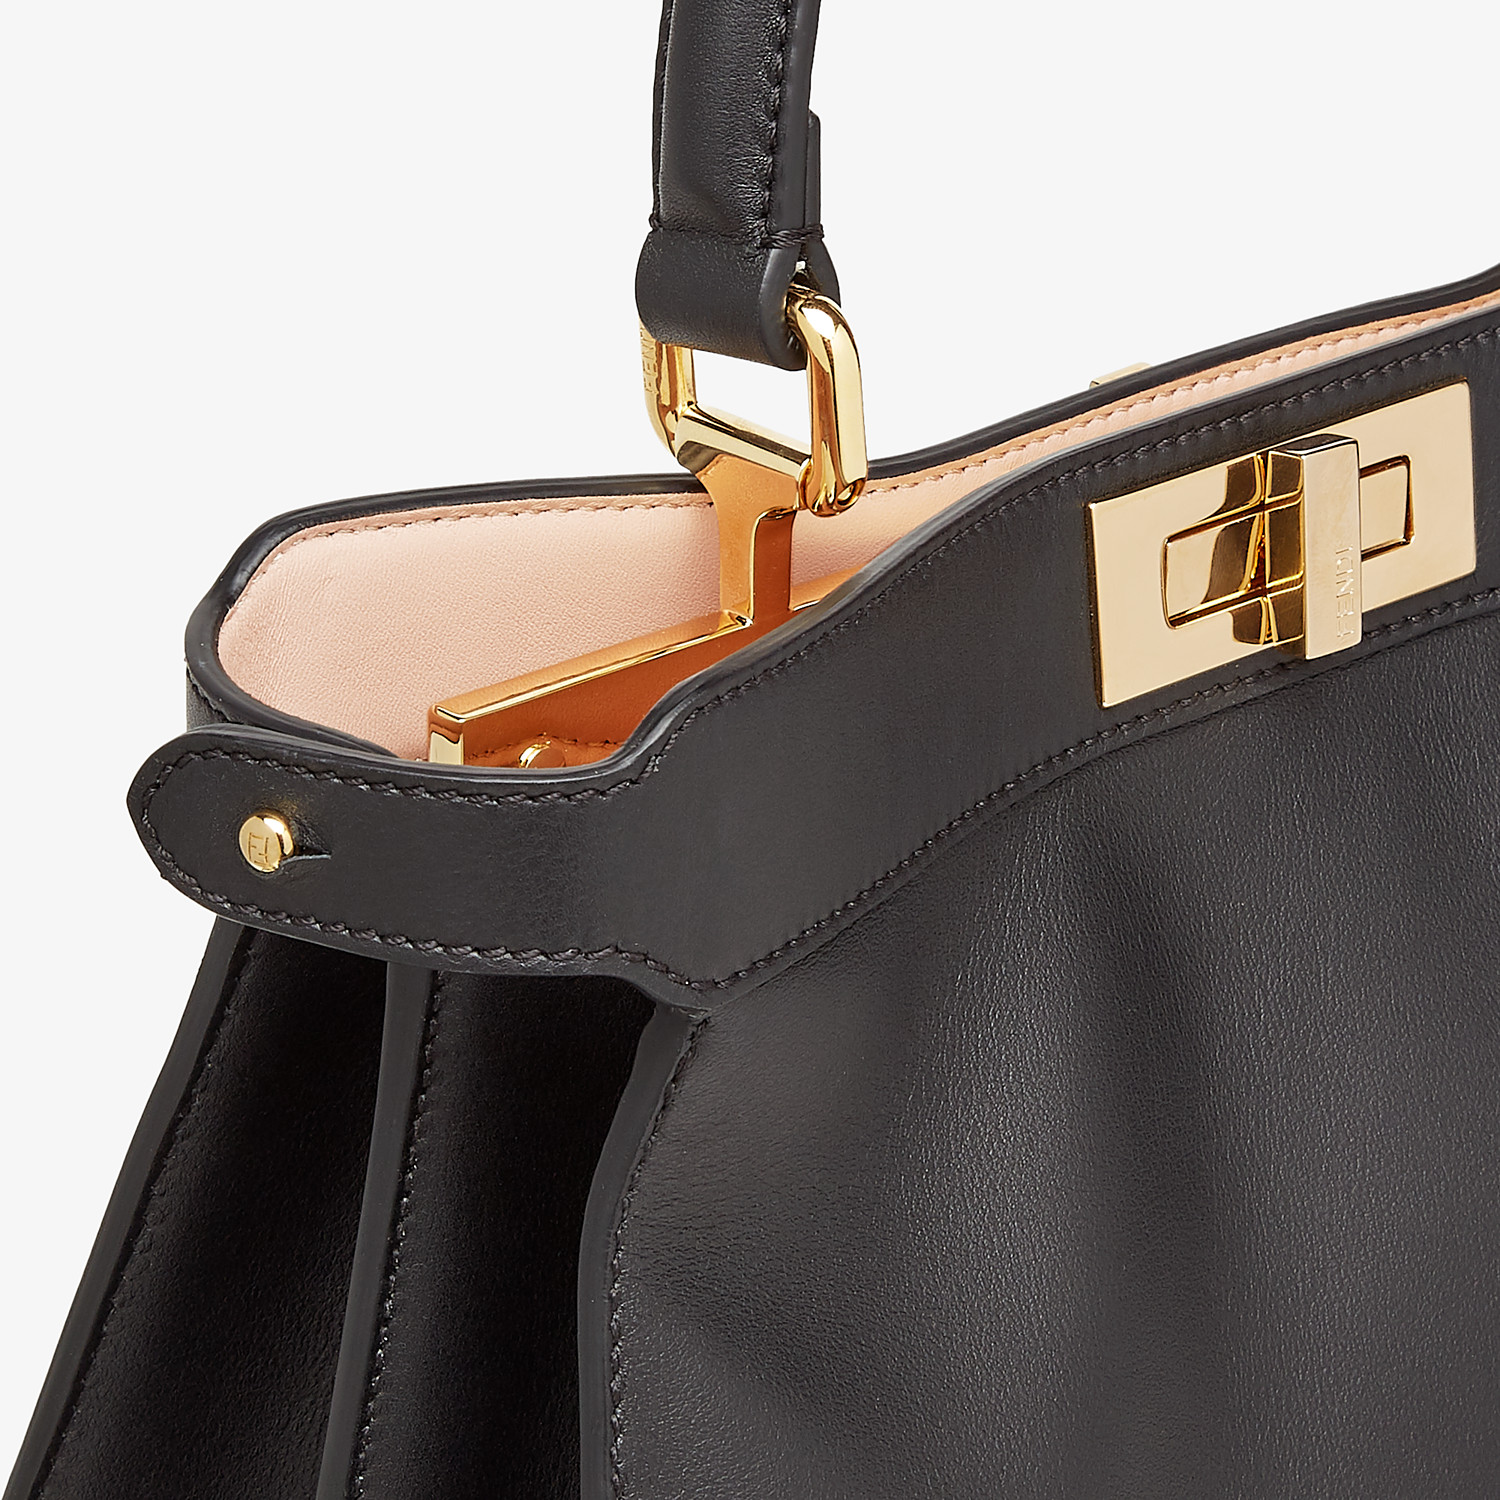 FENDI PEEKABOO ISEEU MEDIUM - Black leather bag - view 7 detail